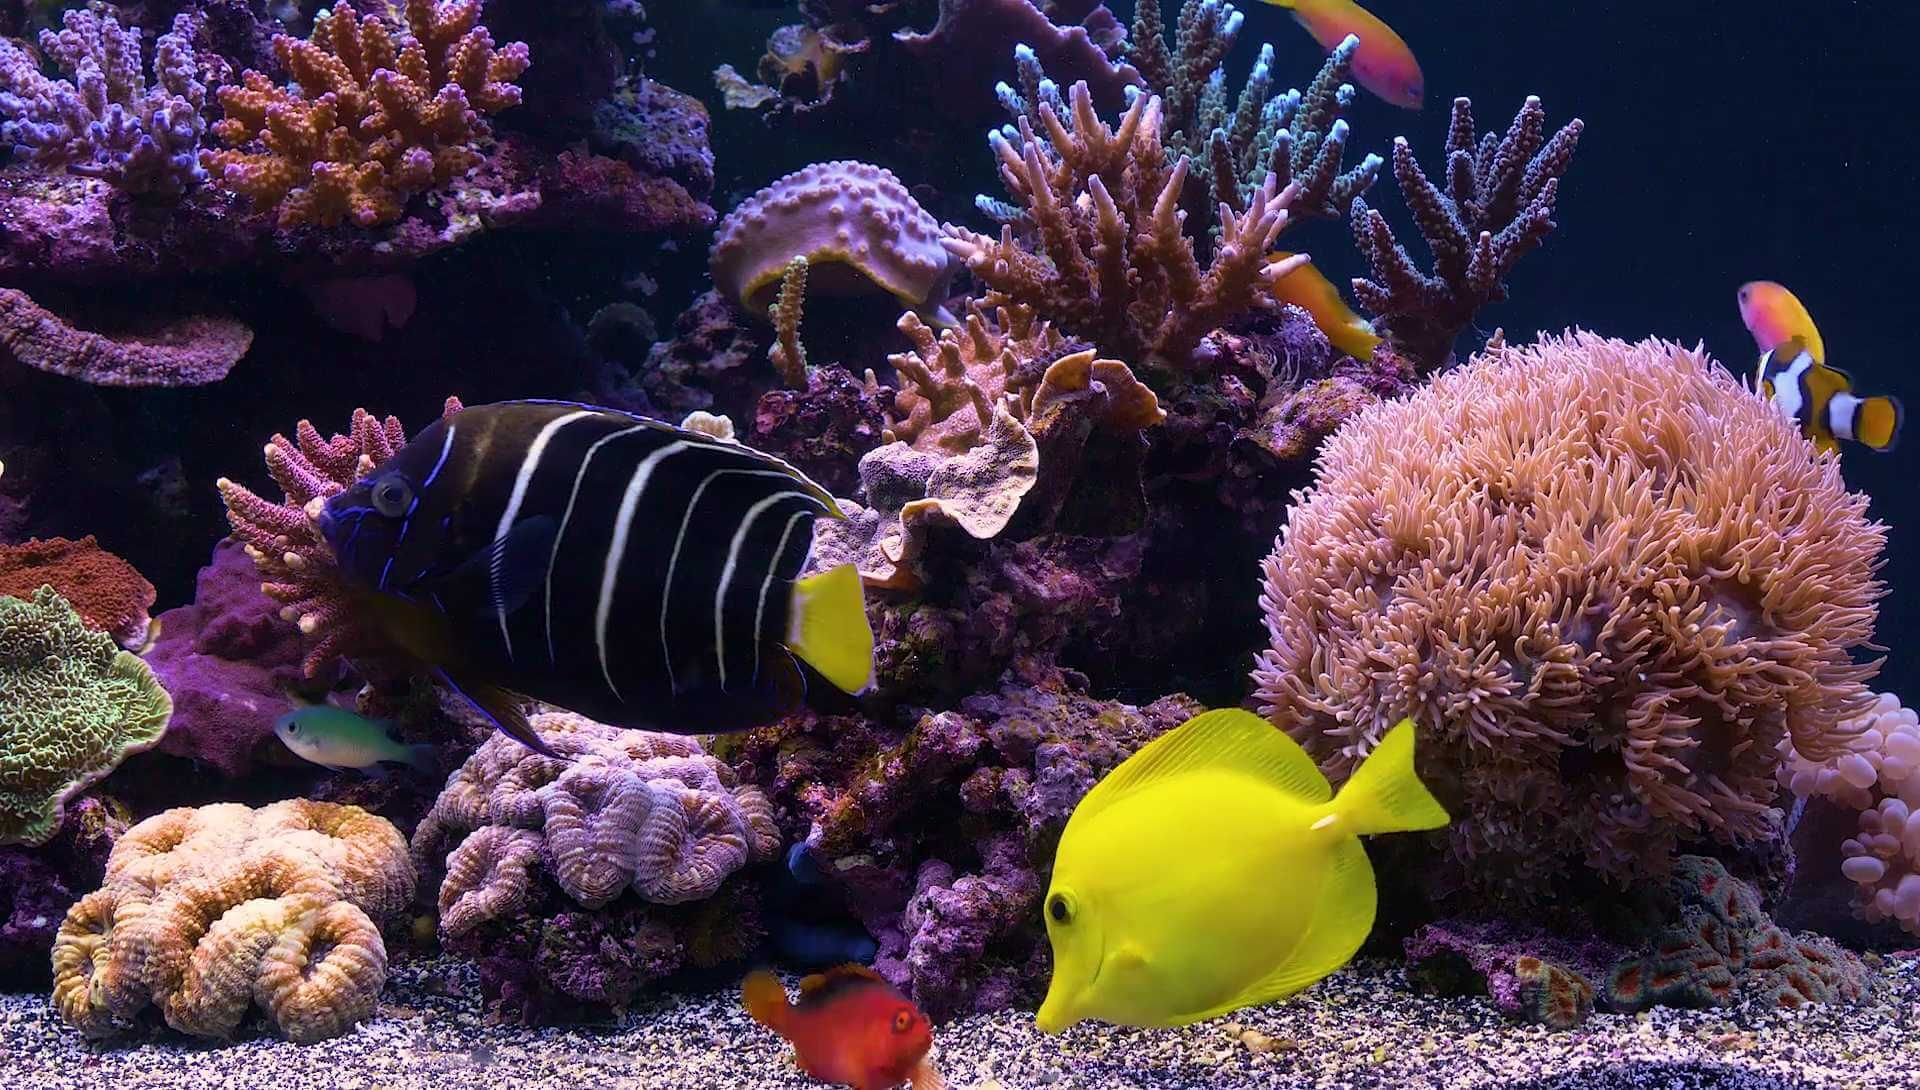 Marine Aquarium Screensaver In 4k Or Hd You Choose For Ultra Tv Screens To Make Your Television A Virtual Any Computer